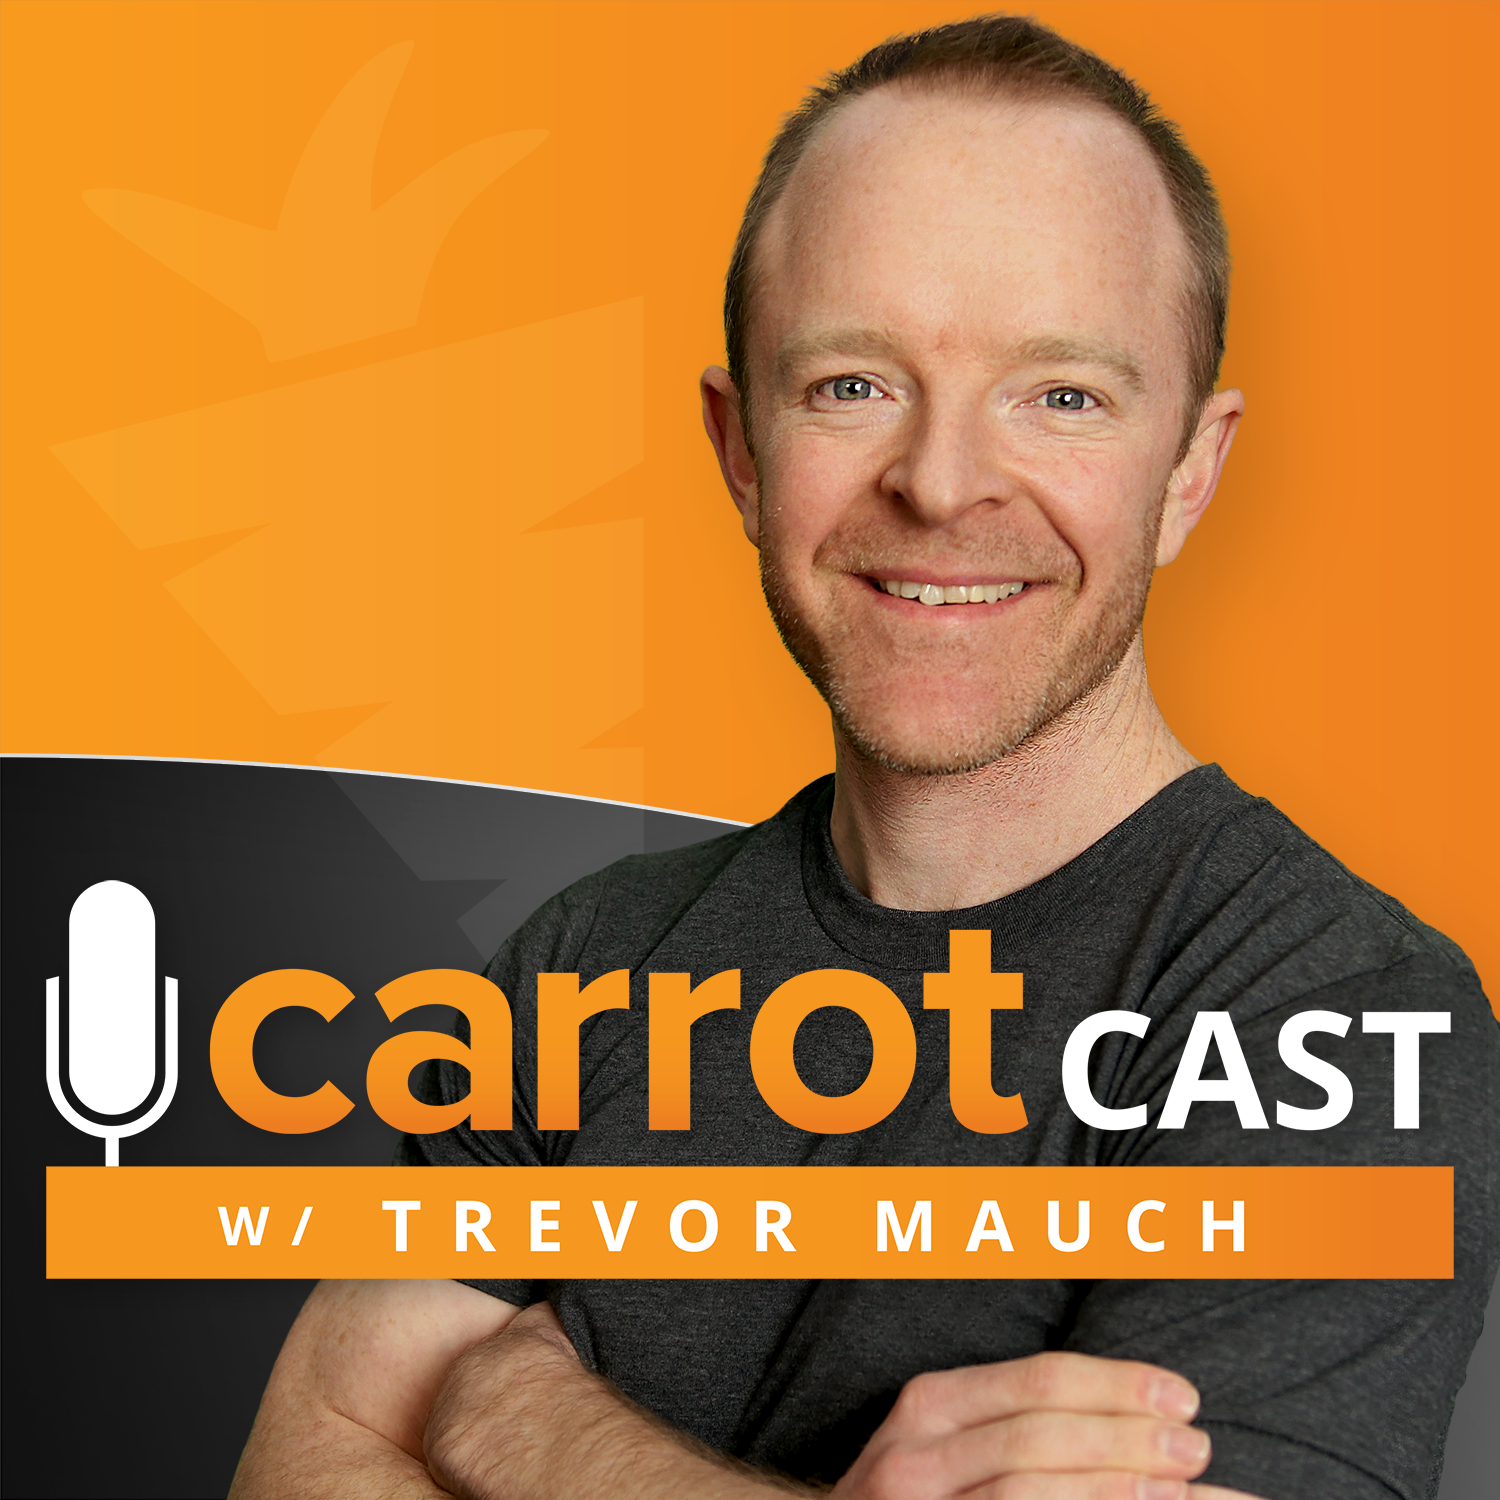 Artwork for We Spent $600k On Carrot.com?? Yes. Hear why + How To Build an Iconic Brand